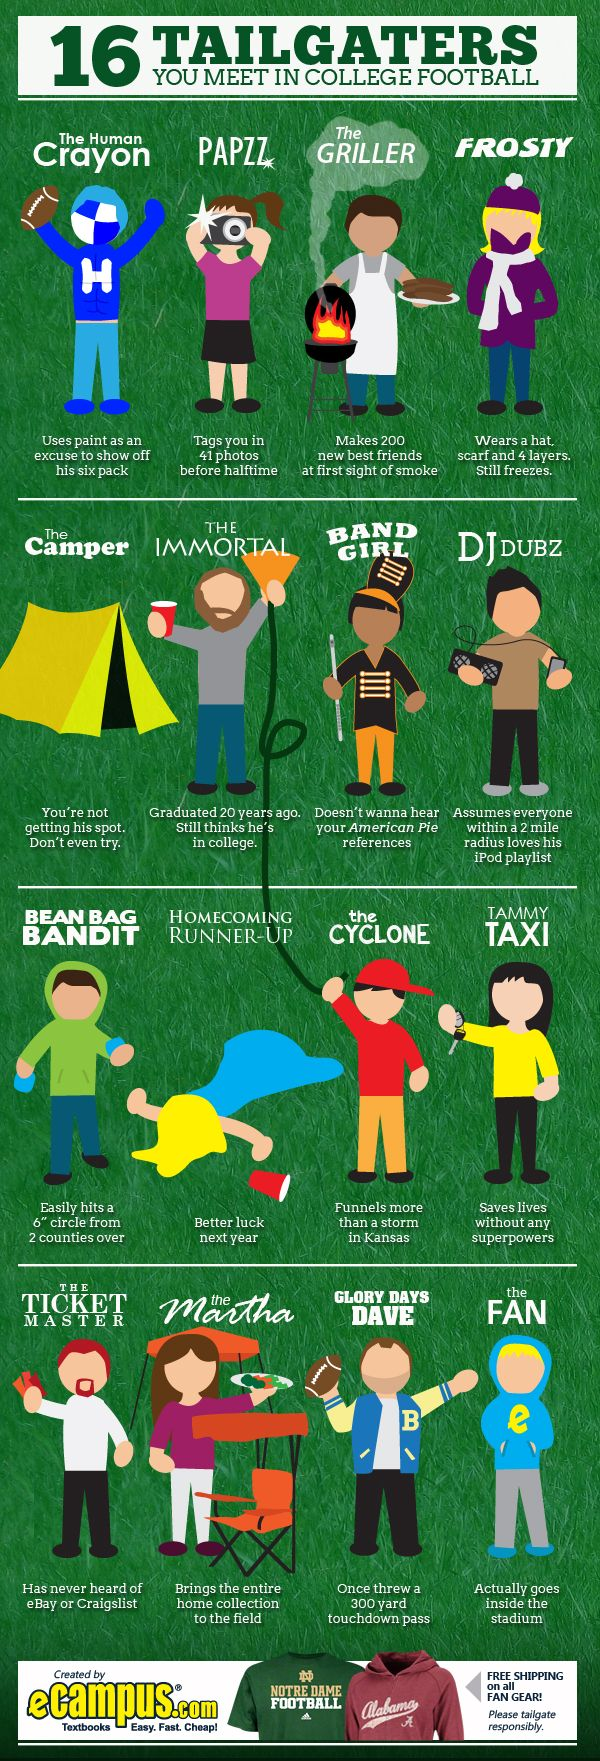 16 Tailgaters You Meet In College Football [INFOGRAPHIC]